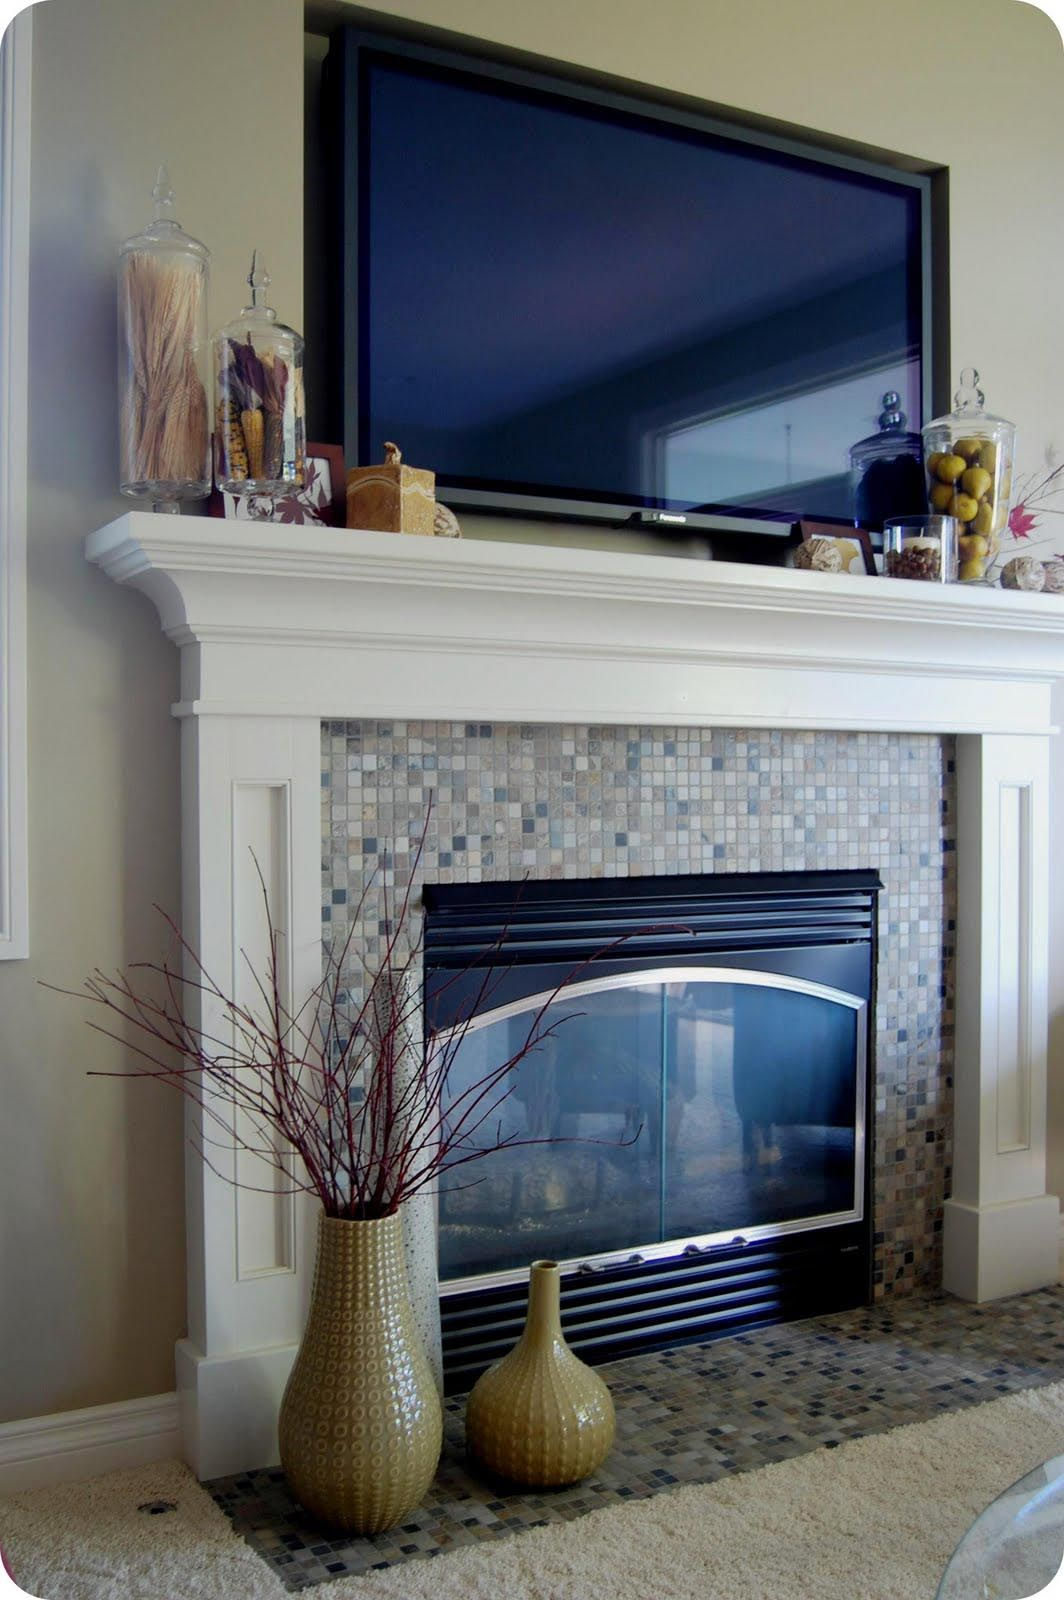 How to decorate a fireplace mantel with a tv fireplace - Decor above fireplace mantel ...